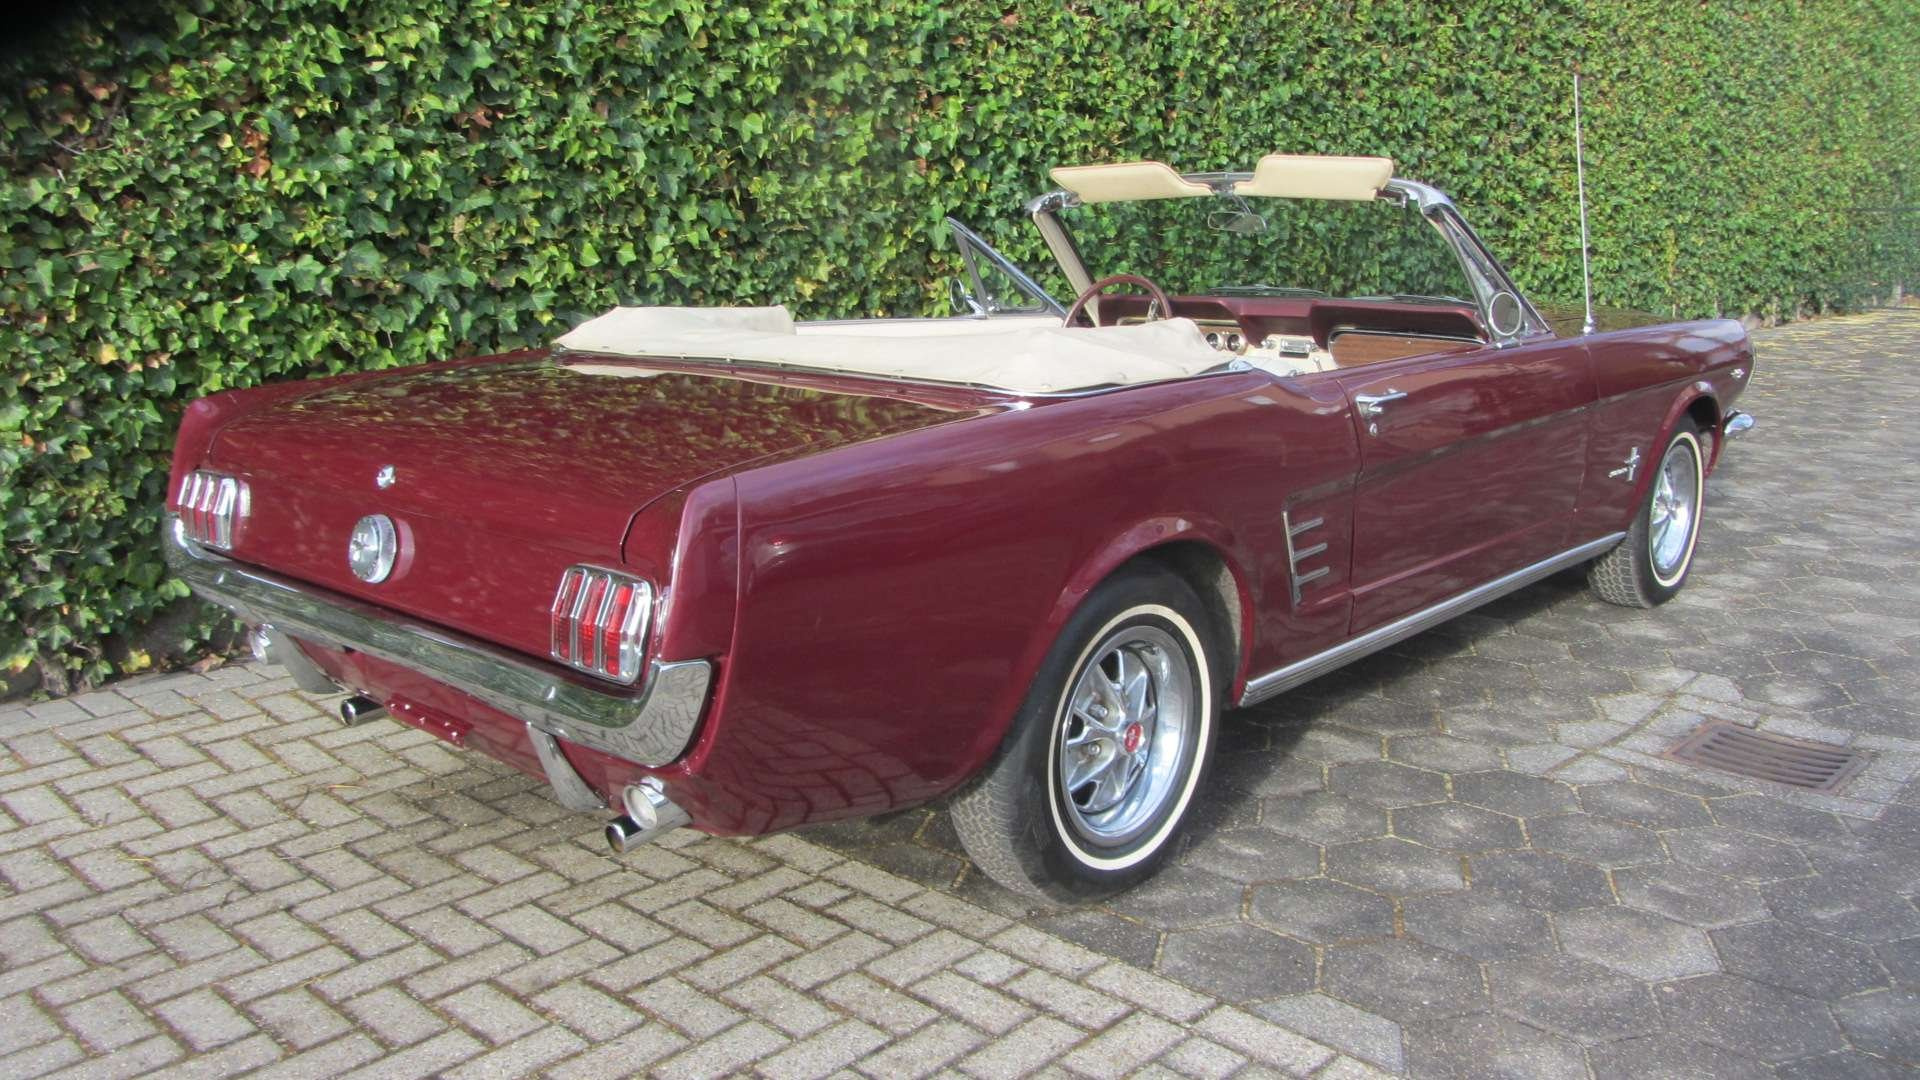 Ford Mustang V 8 Pony Intr 1966  & 50 USA Classics For Sale (picture 2 of 6)